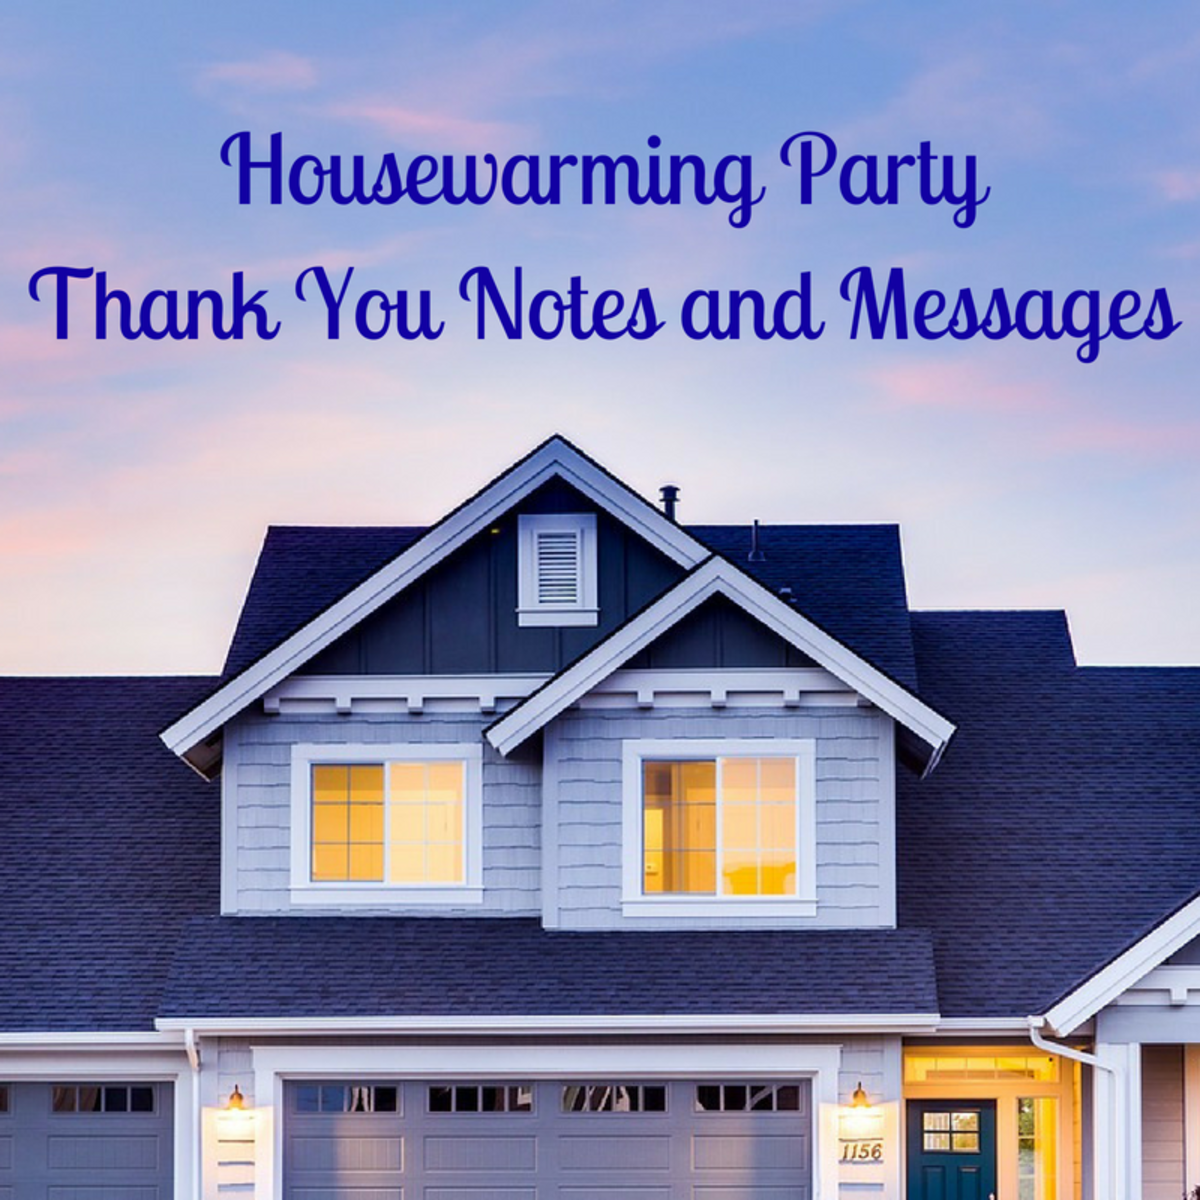 Housewarming Party Thank You Notes